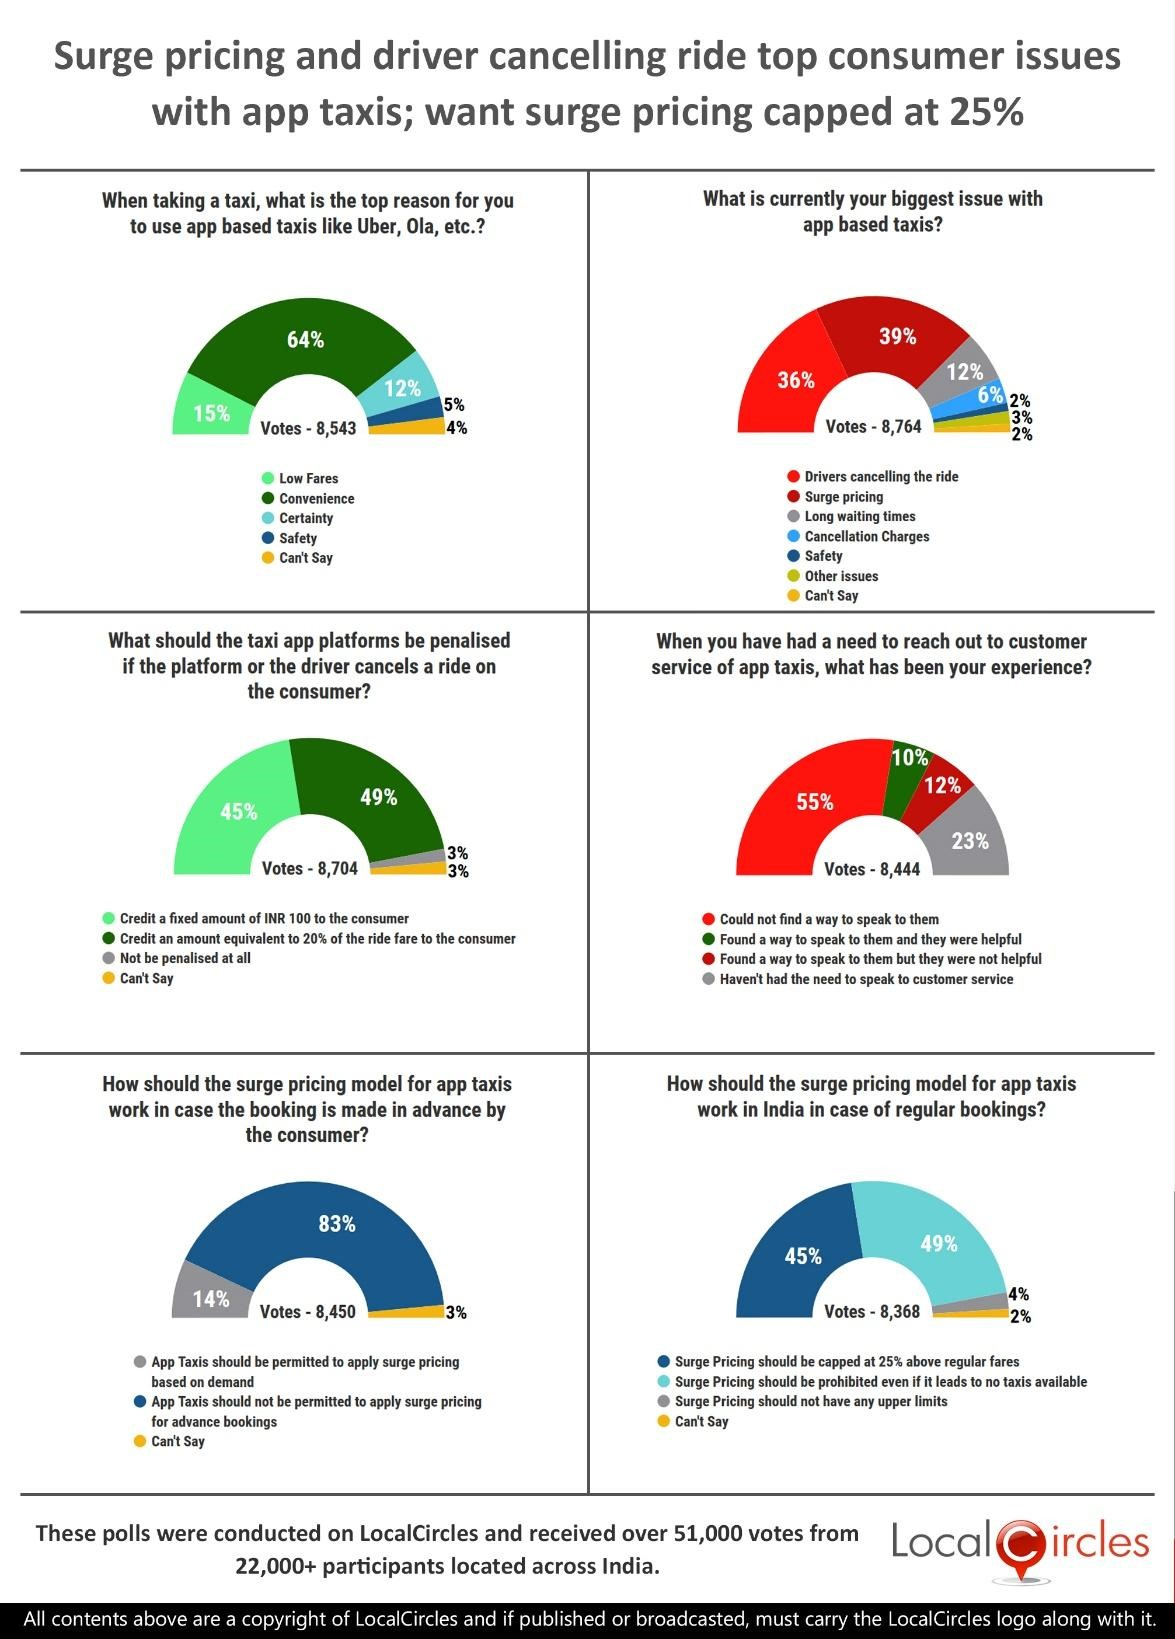 LocalCircles Poll - Surge pricing & driver ride cancellations top consumer issues with app taxis; want surge pricing to be capped at 25%